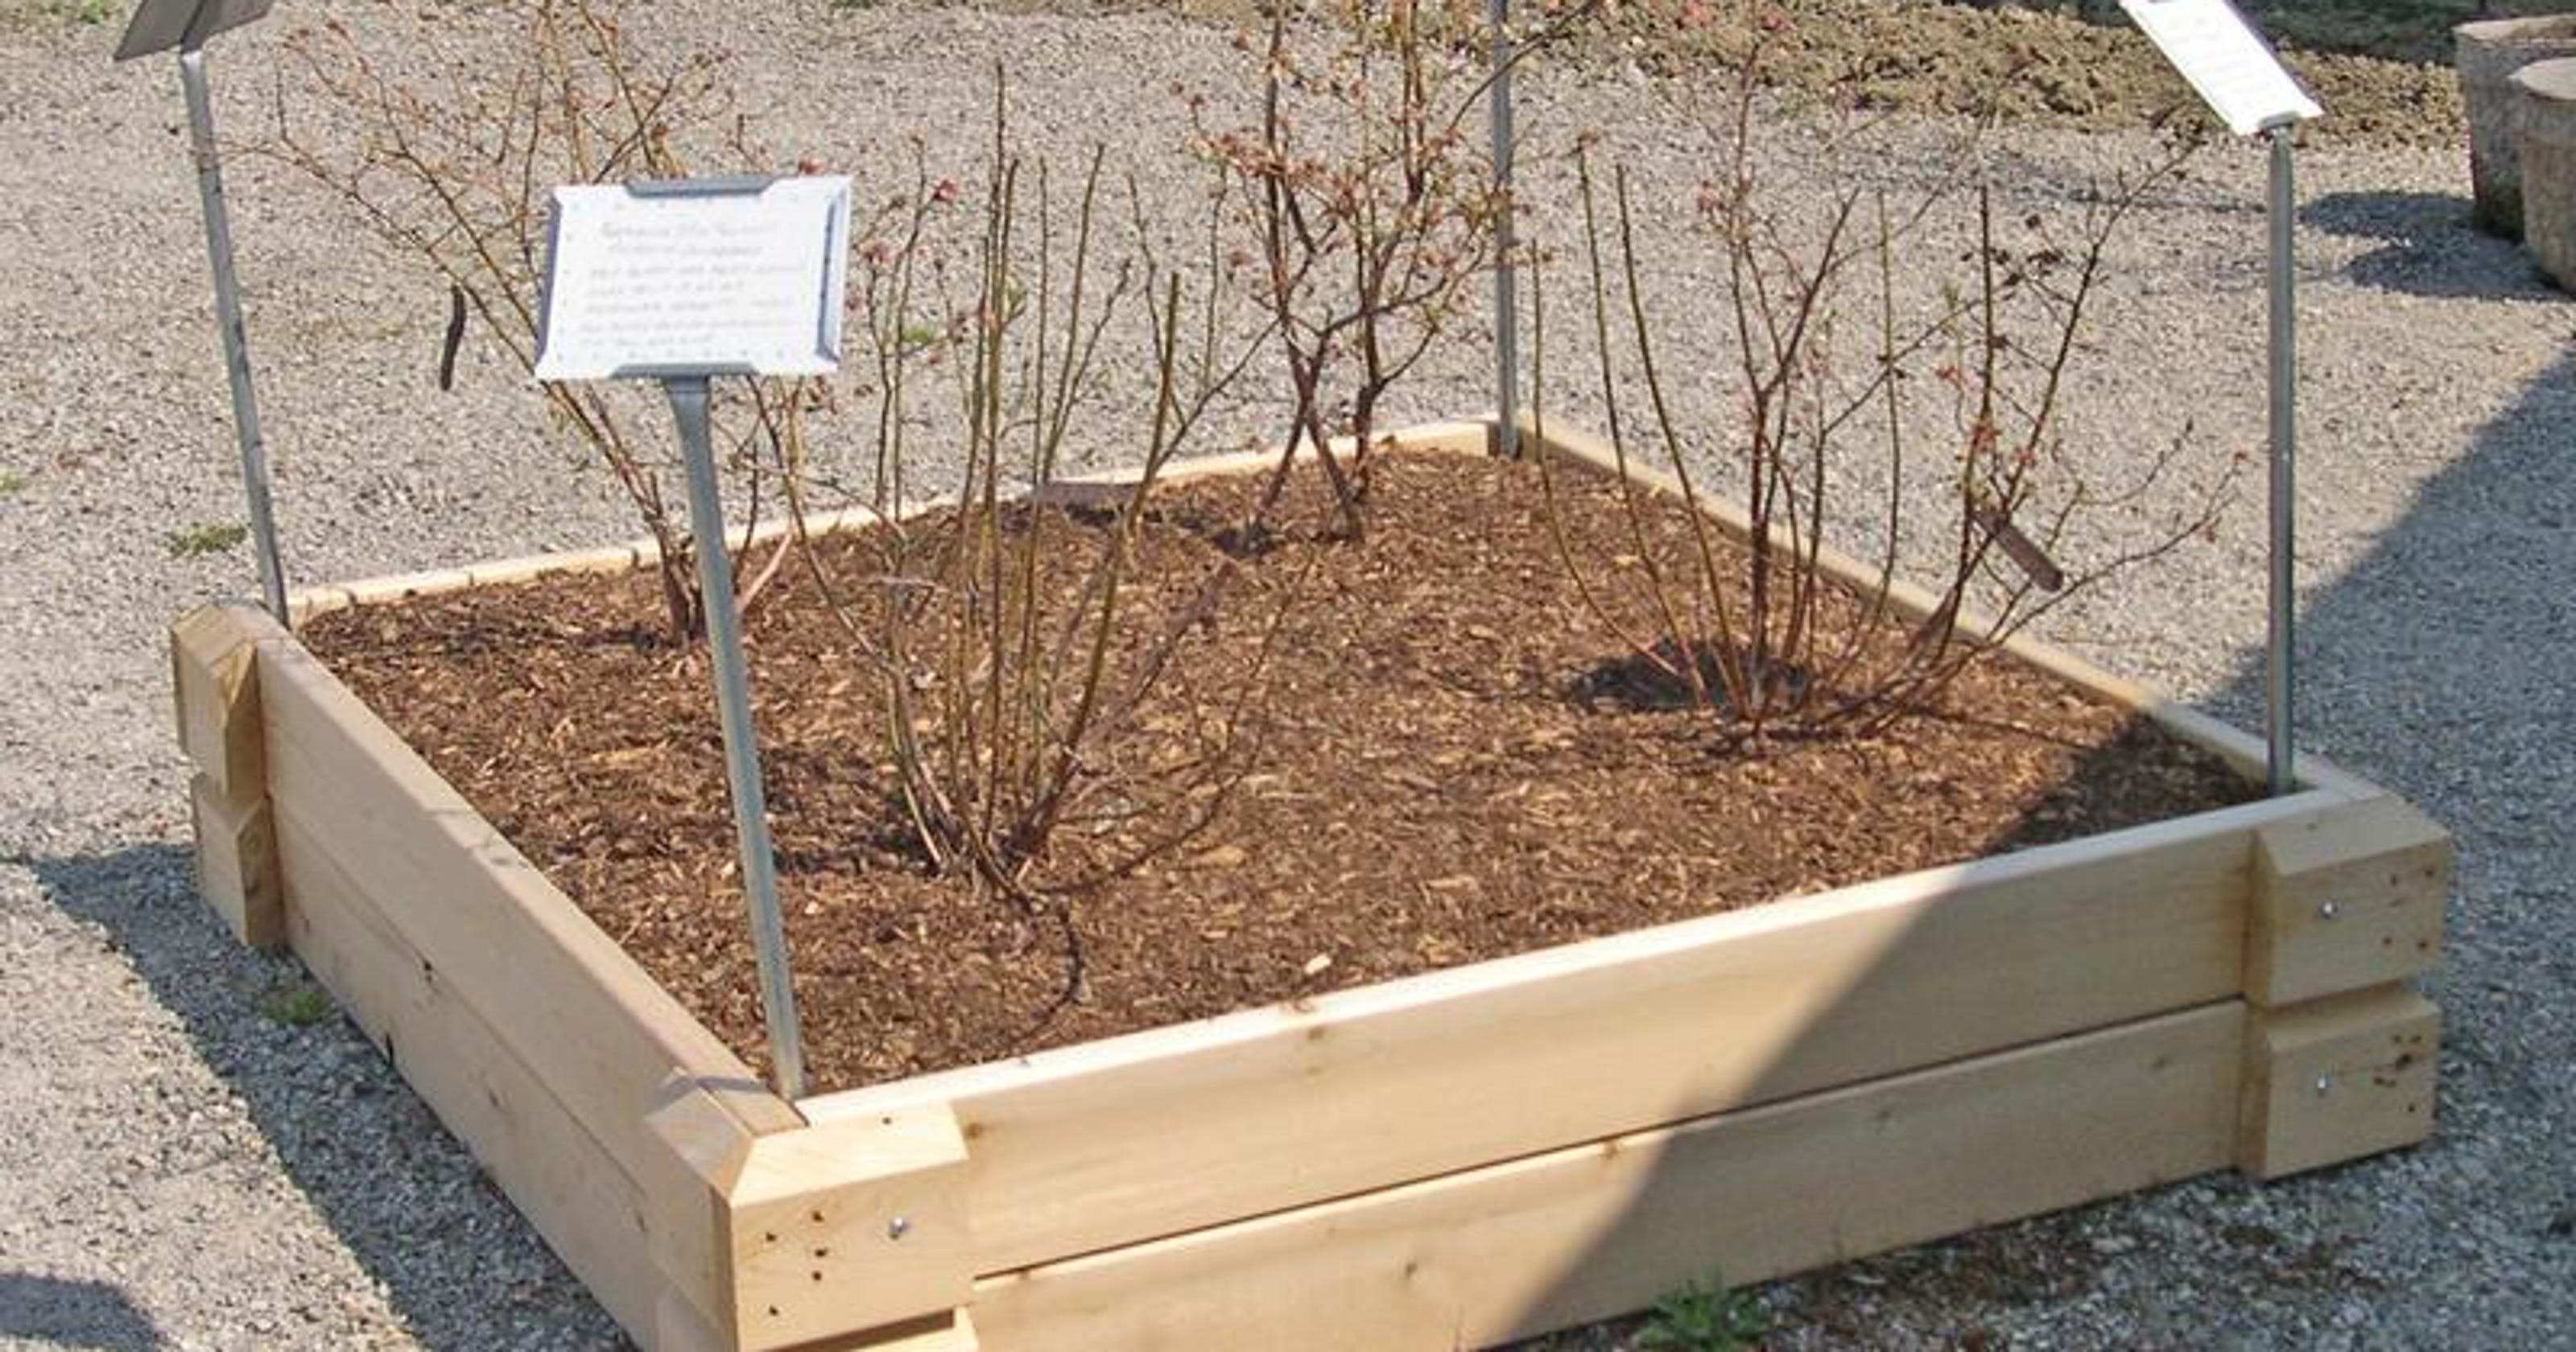 Raised plant beds can make gardening easy